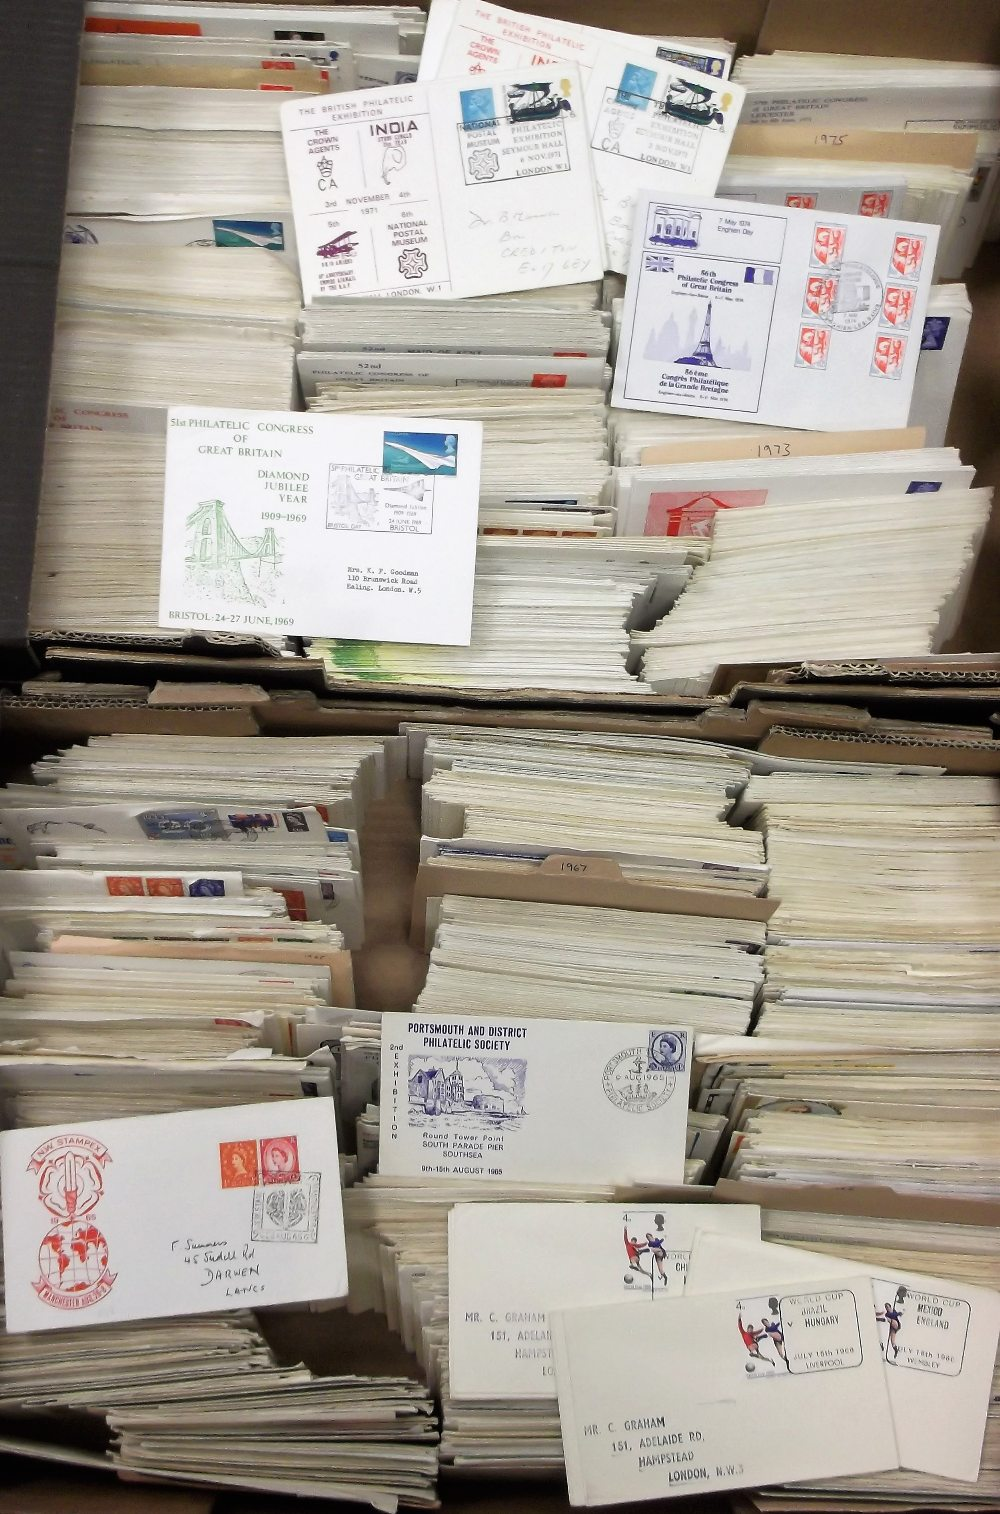 Lot 17 - Postal history, a large collection of covers, 1963 to 1975, all with special event postmarks, many